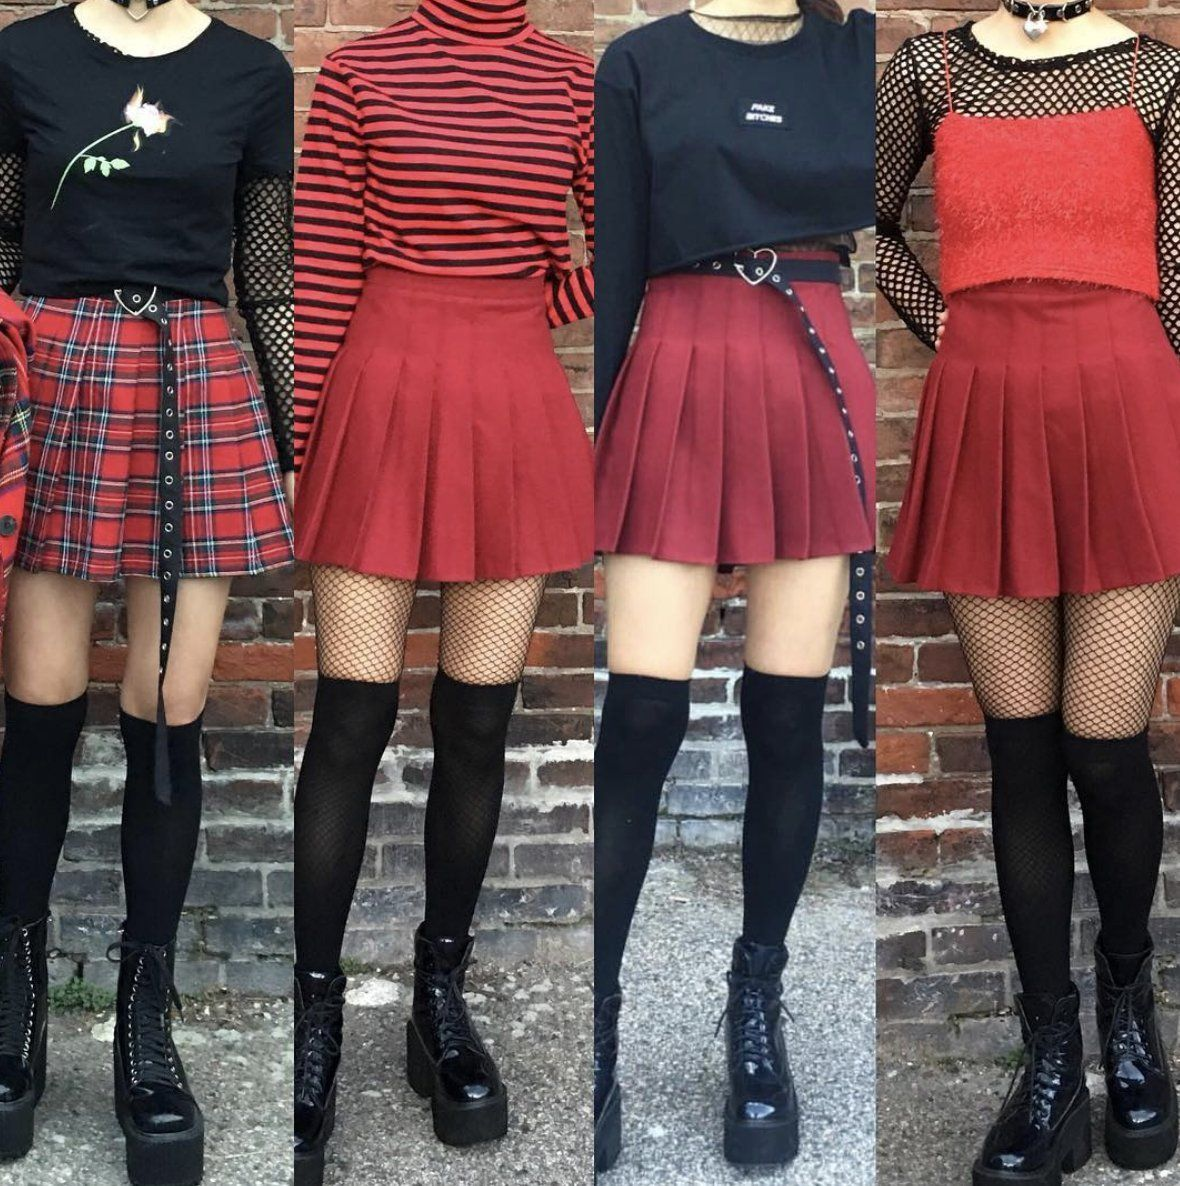 Kwaii Tumblr Aesthetic Clothing Store Kokopiecoco Aesthetic Clothing Stores Aesthetic Clothes Red Skirt Outfits